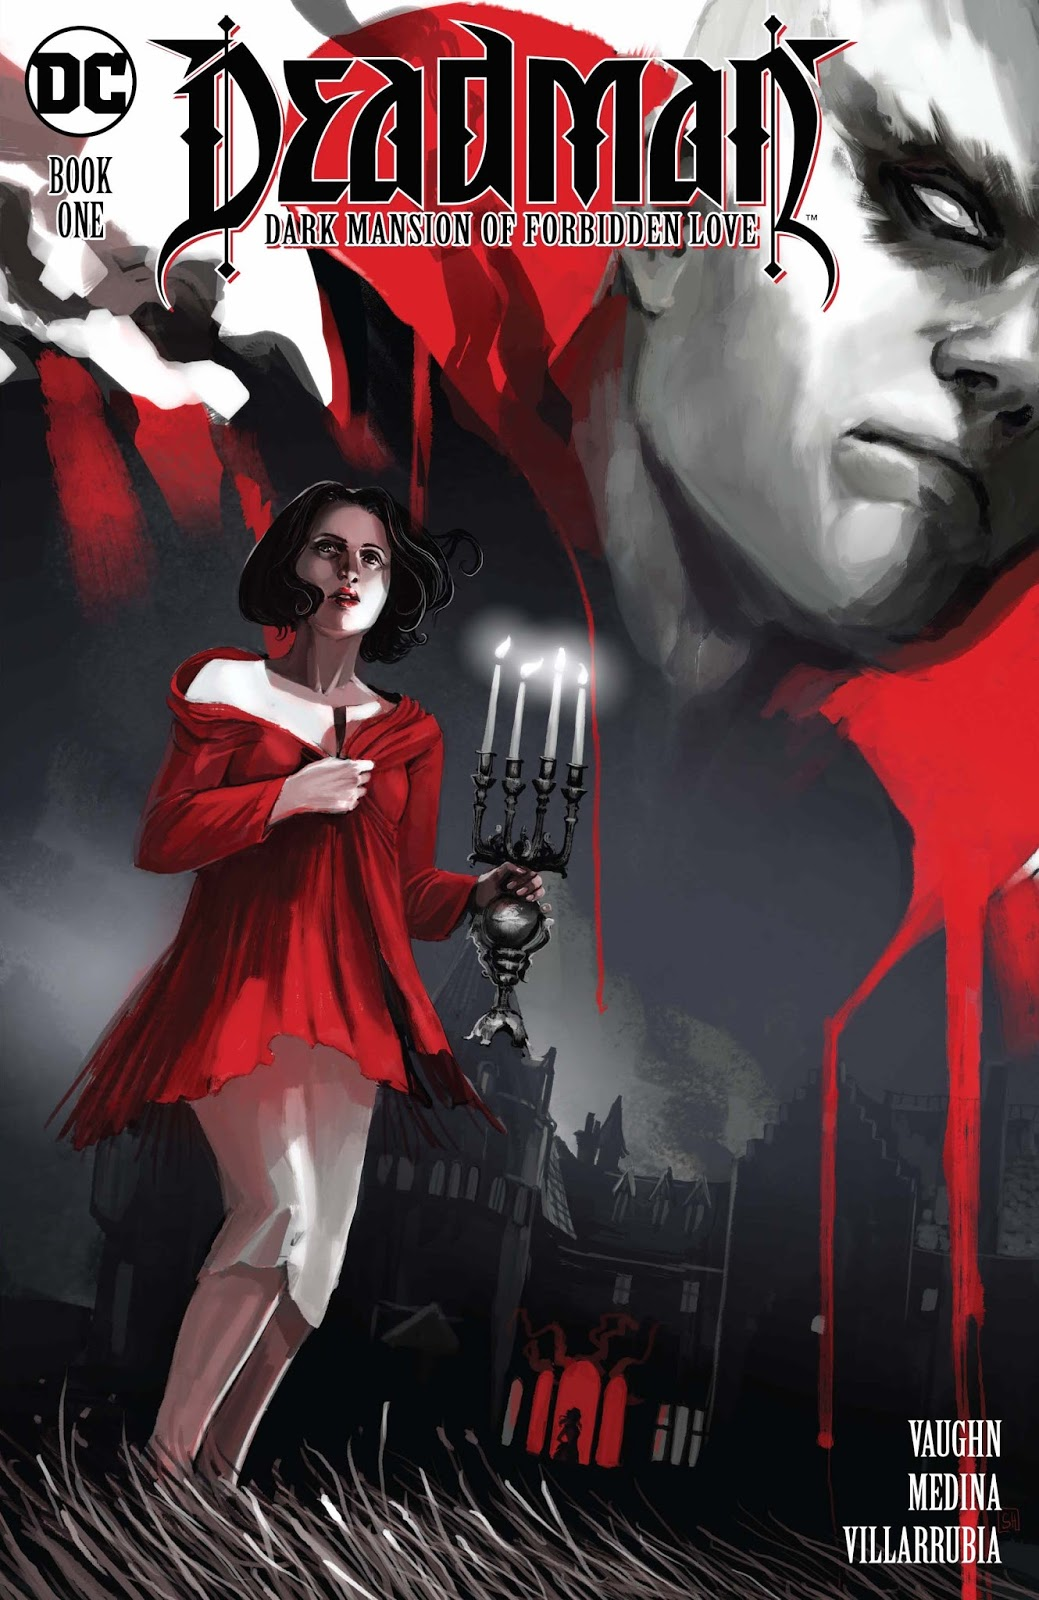 a girl in a red sweater and white pankts holds a candleabra.  In the background looms a vampire looking scary monster.